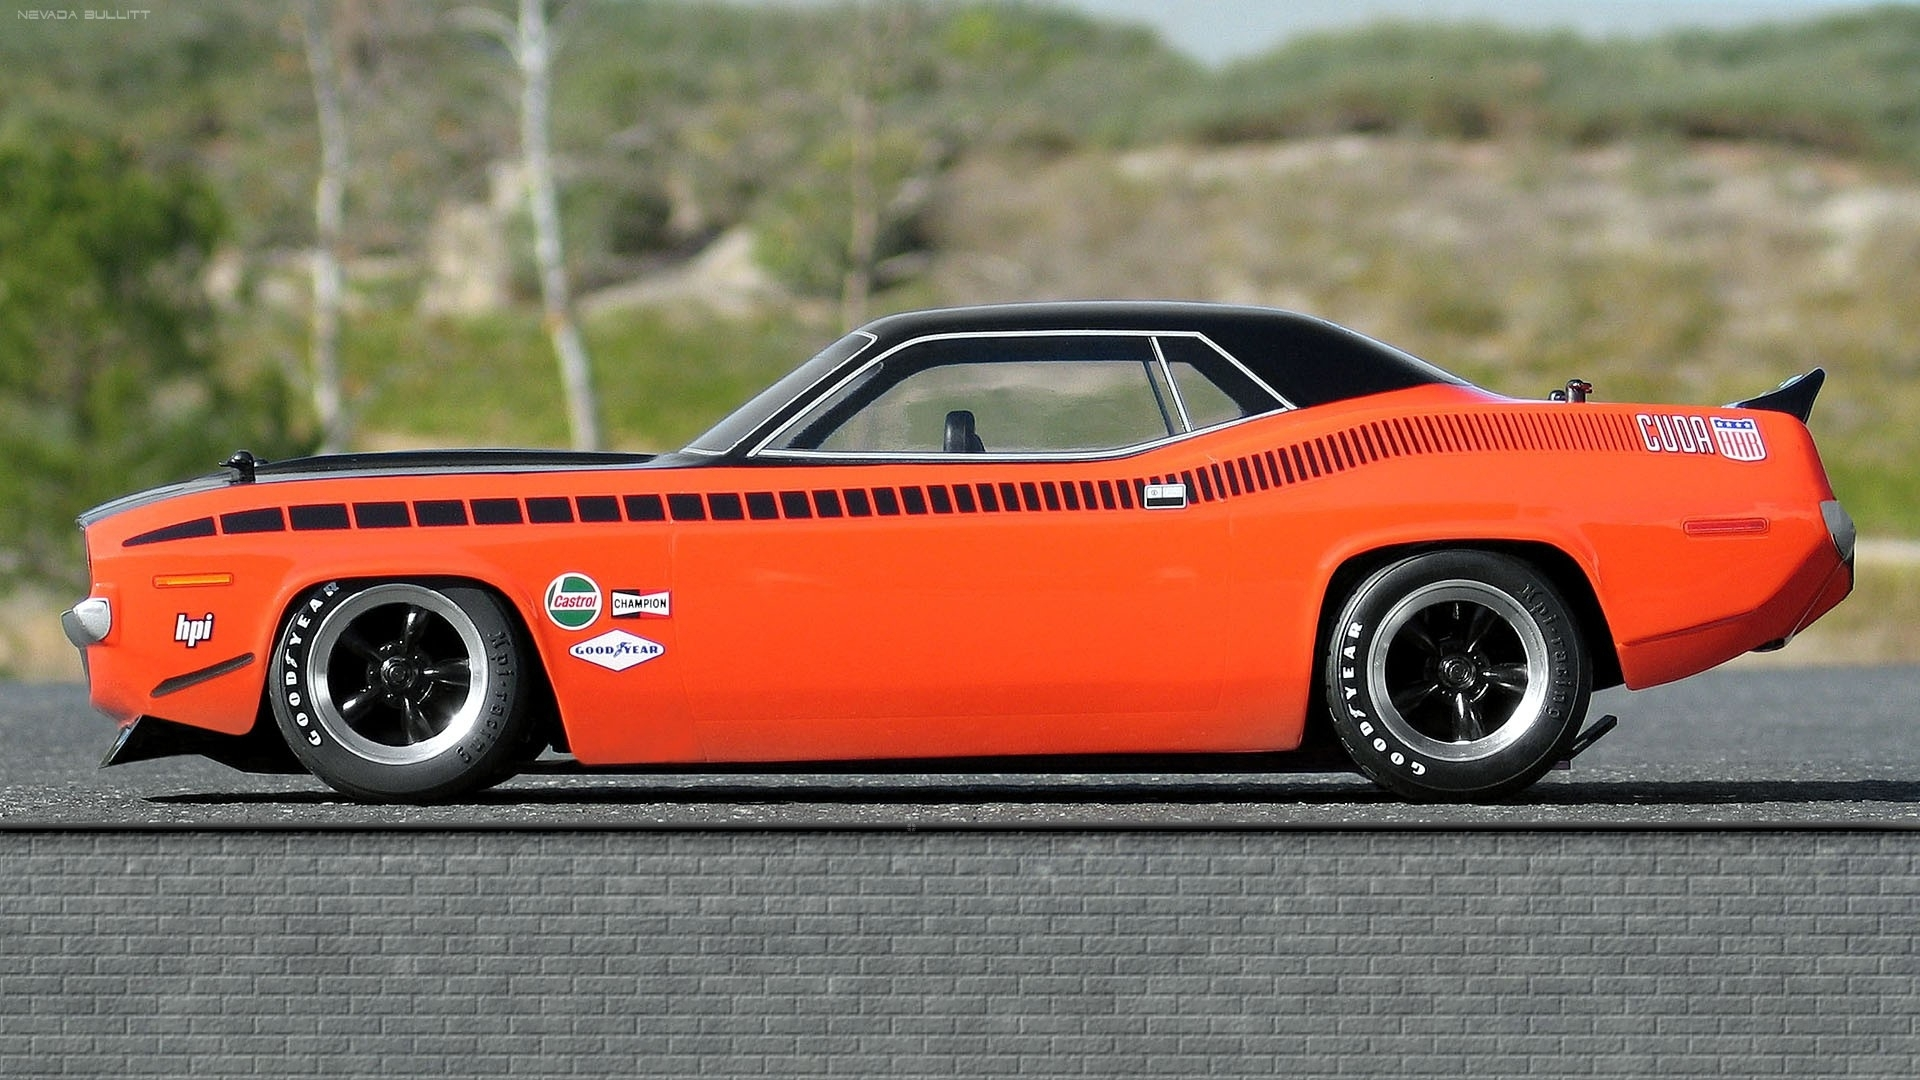 Plymouth Barracuda Classic Old Retro Muscle Vehicles Cars Orange